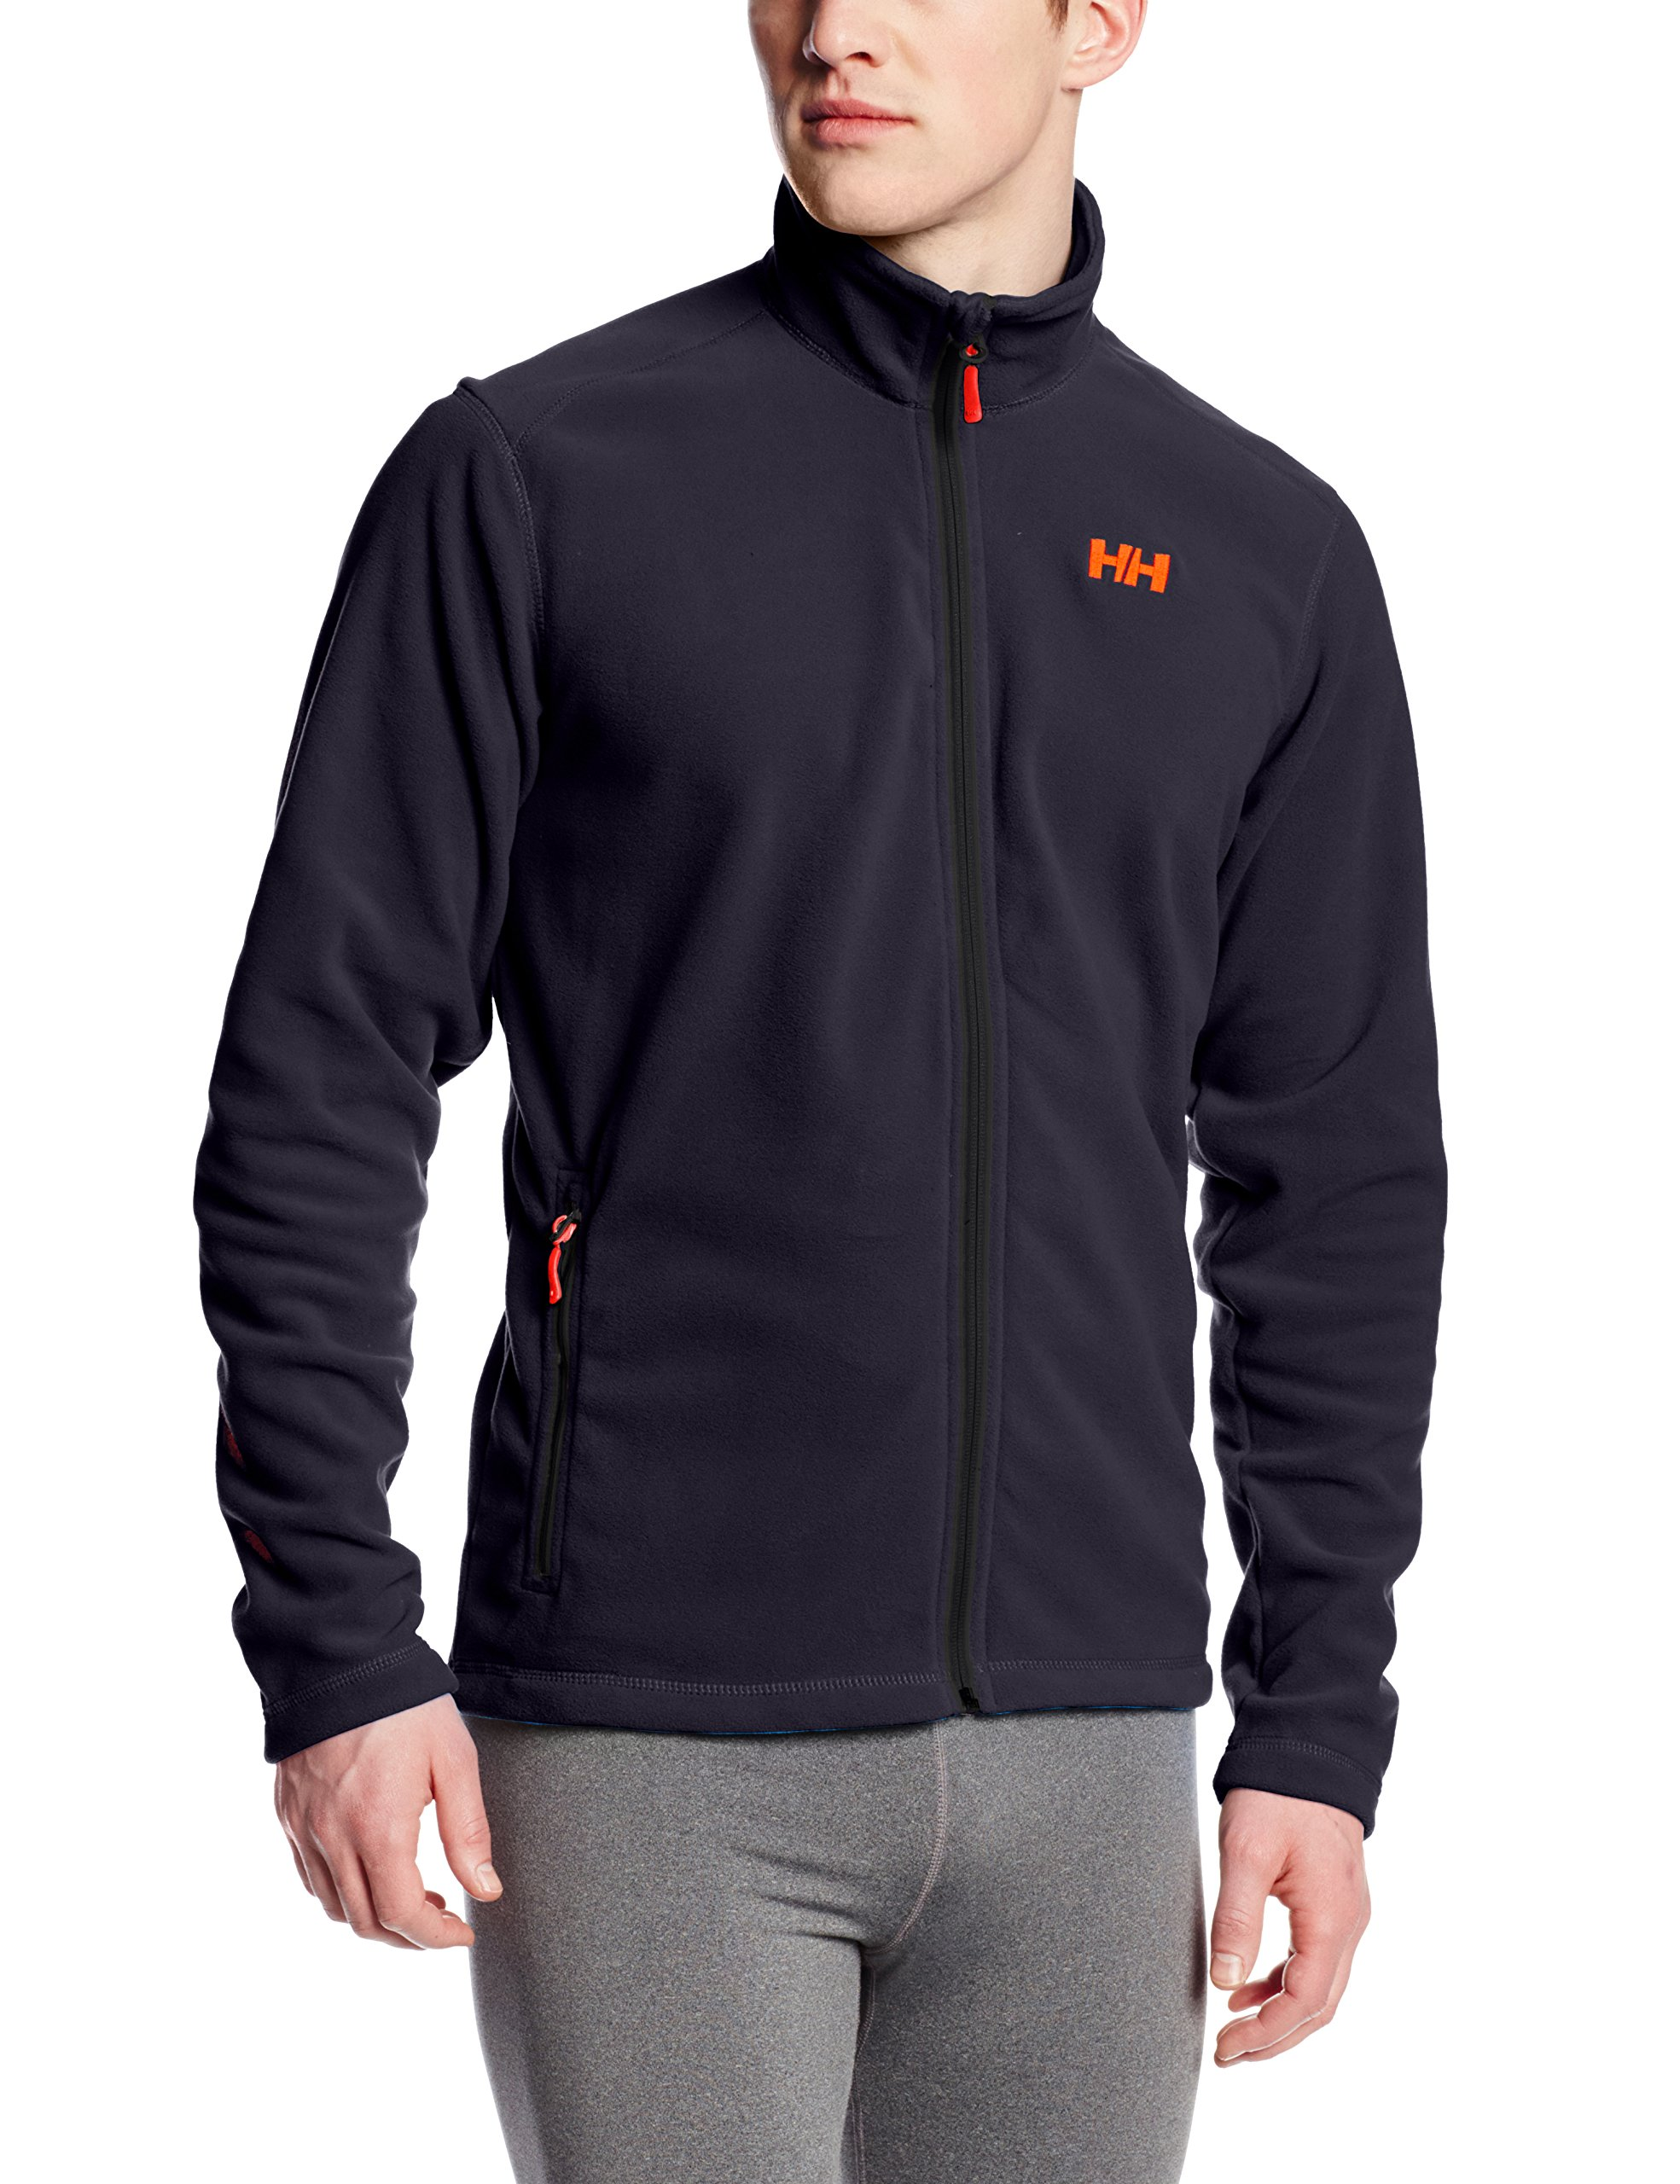 Helly Hansen Men's Daybreaker Lightweight Full Zip Fleece Jacket, 994 Graphite Blue, Medium by Helly Hansen